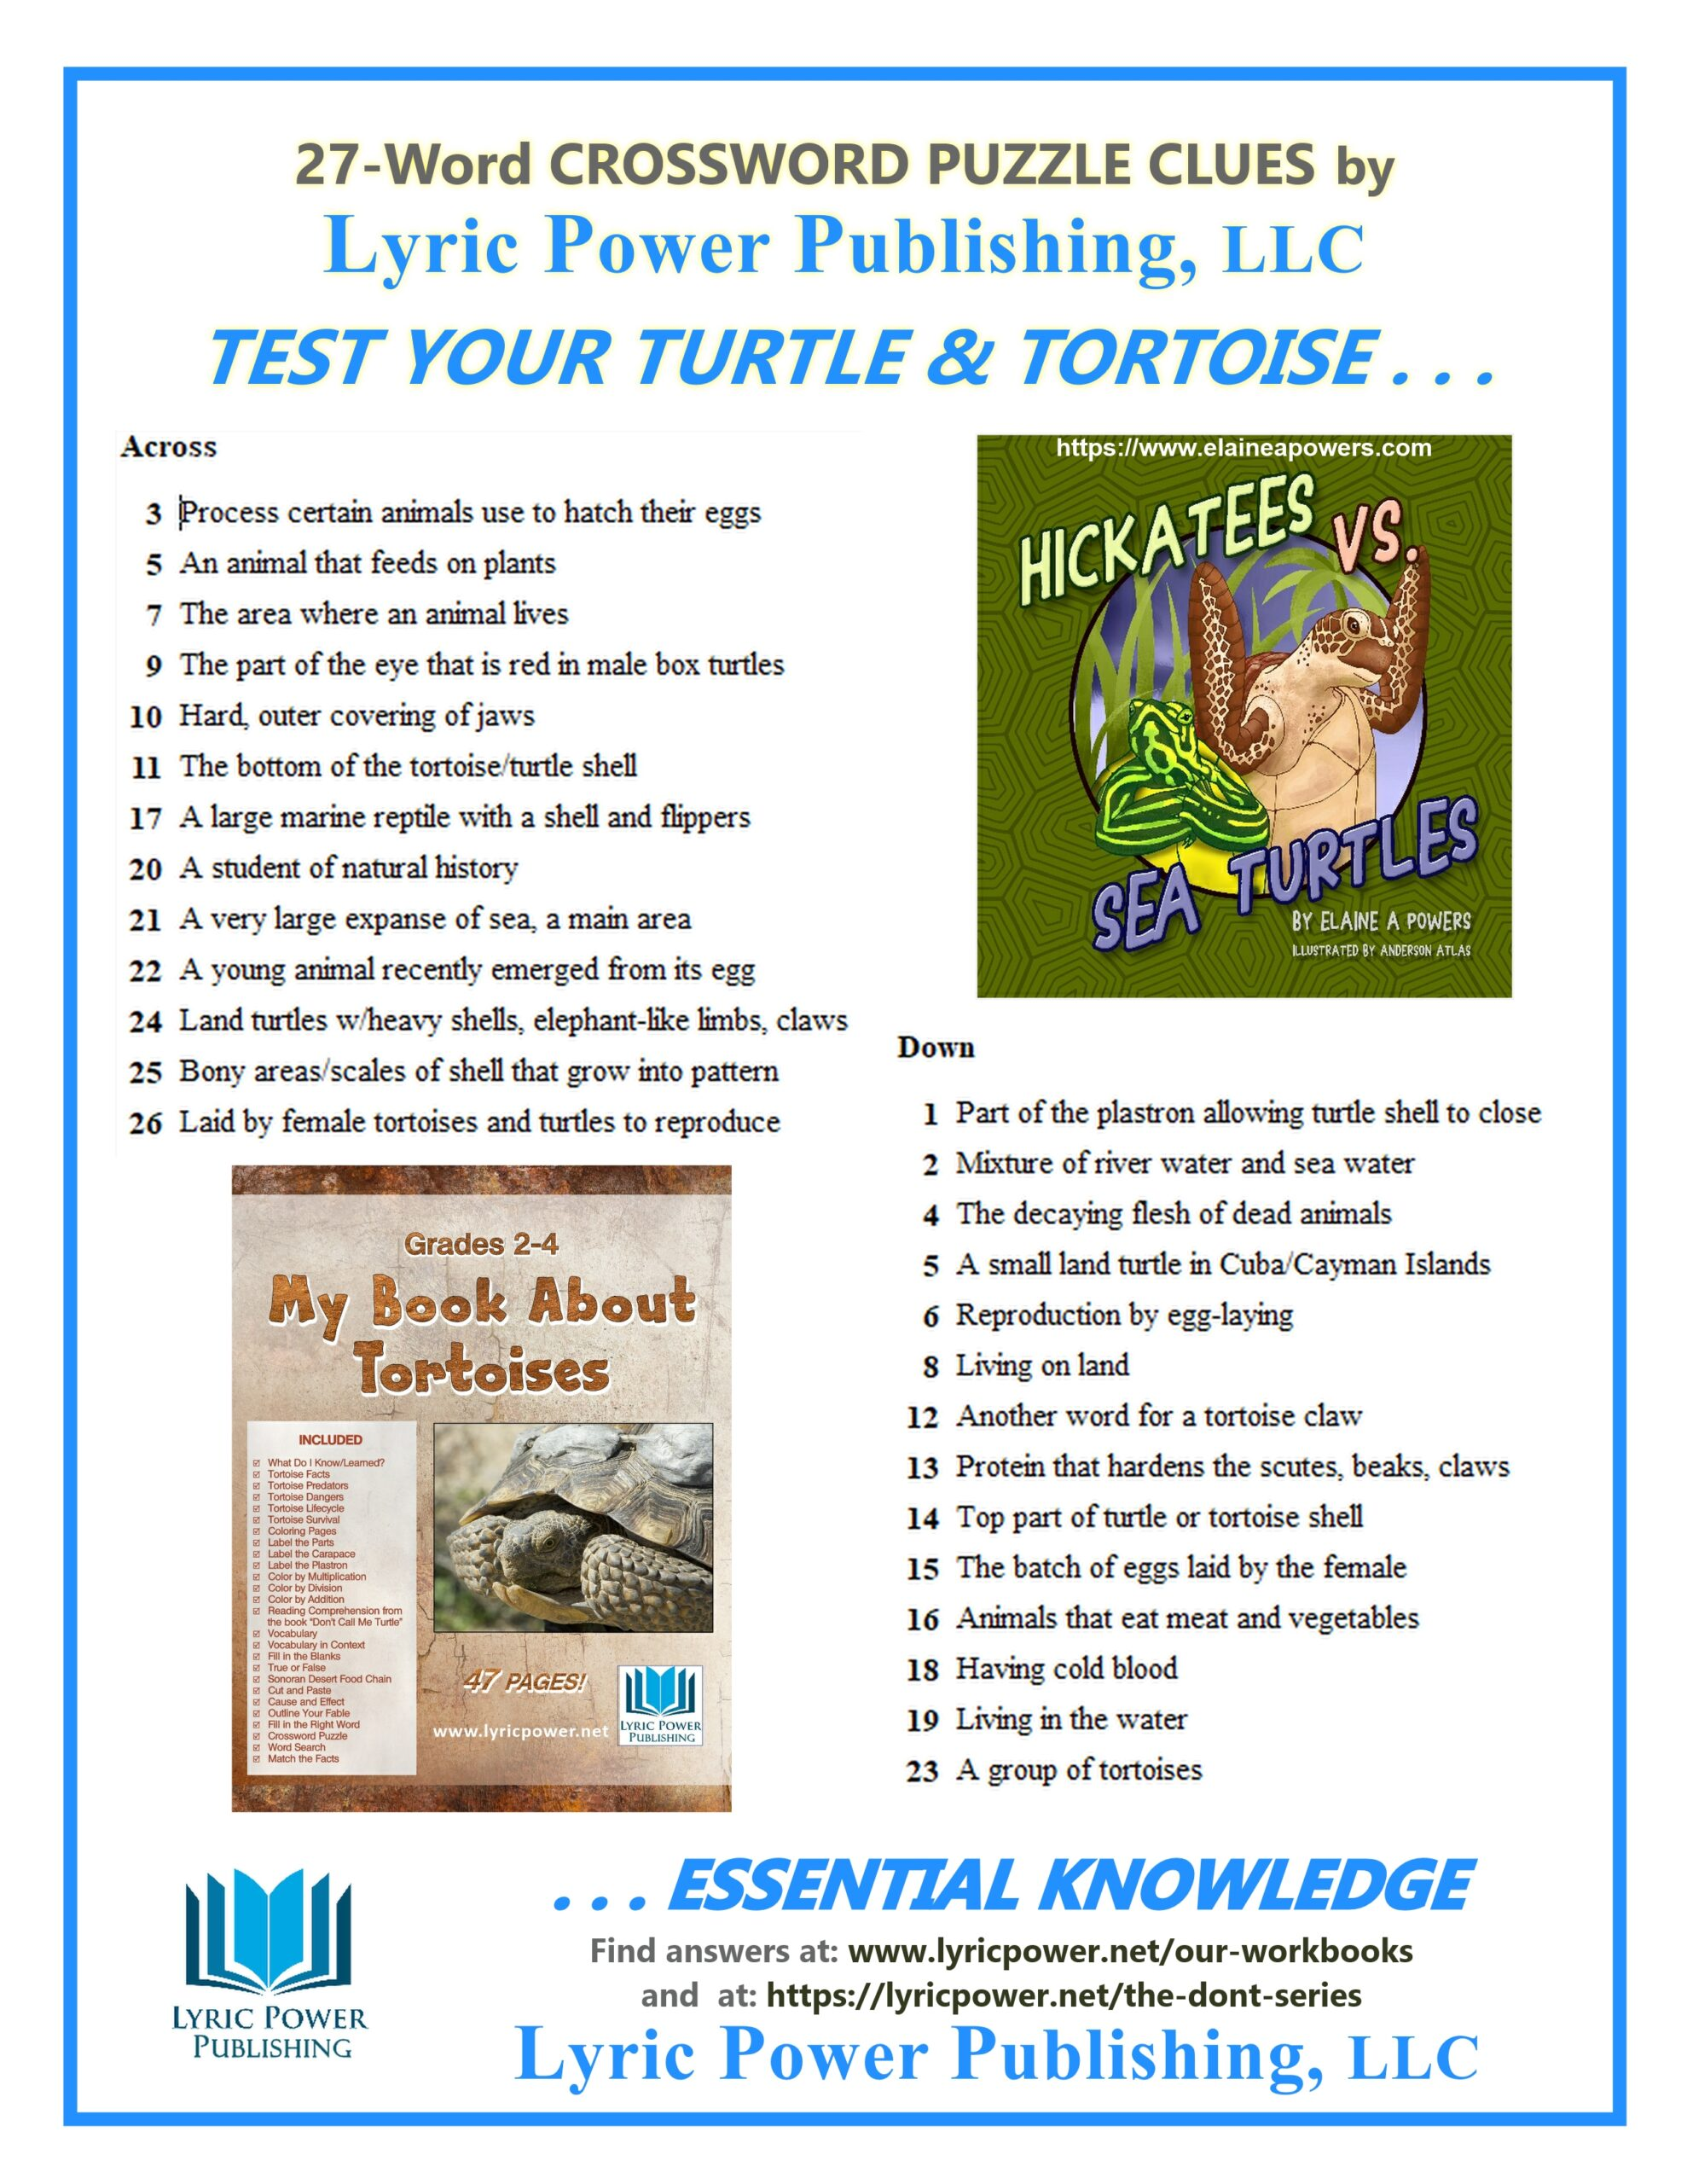 Clues for Crossword Puzzle Tortoises and Turtles